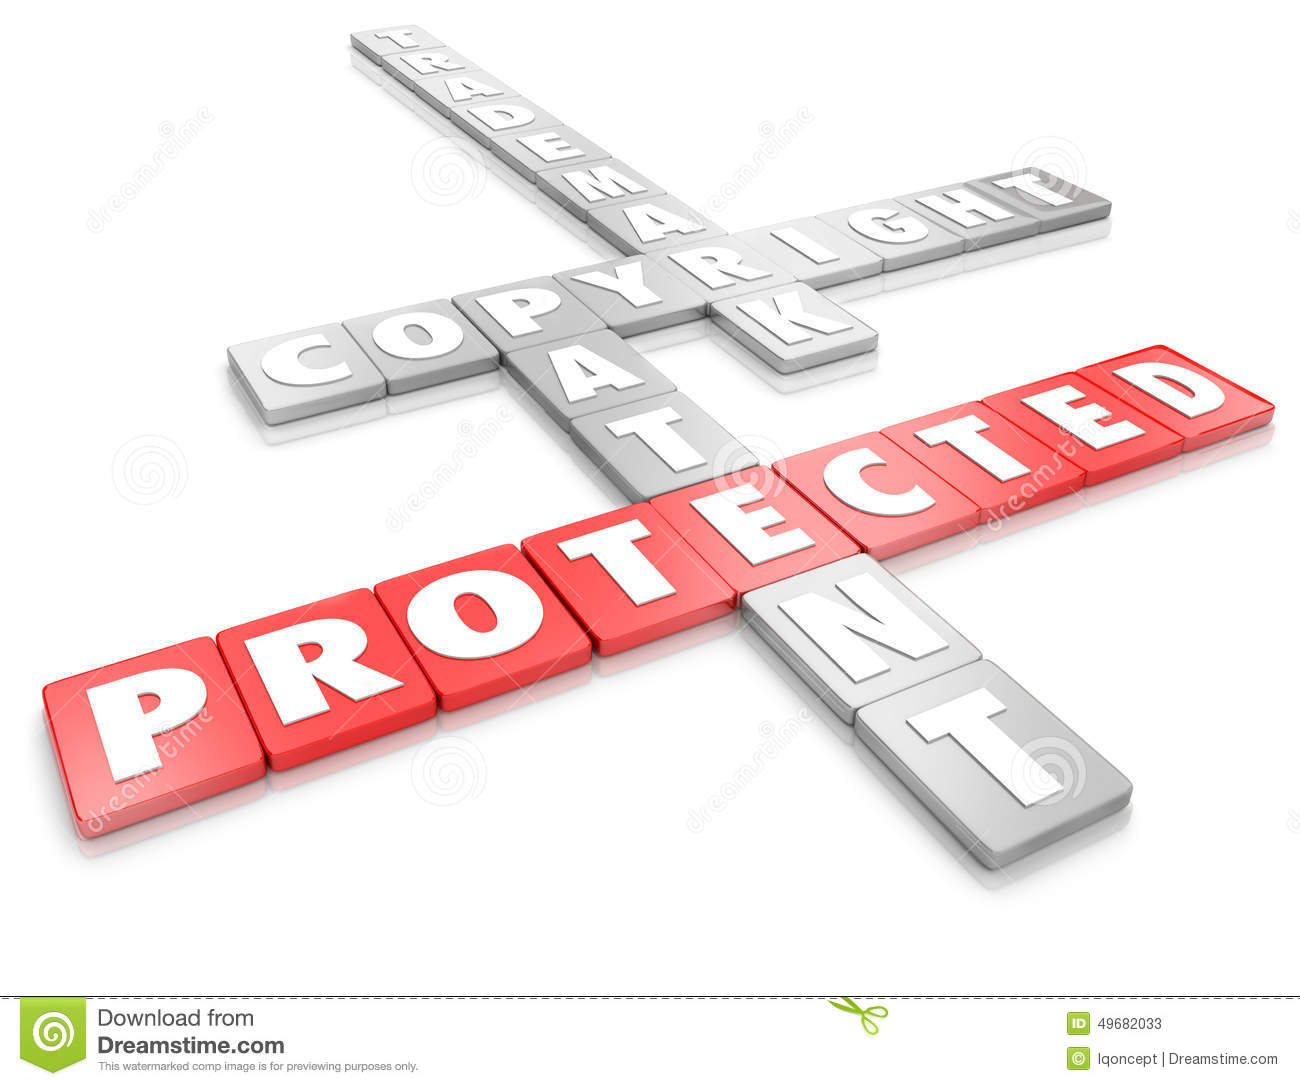 Intellectual Property Protection: Protected Intellectual Property Legal Copyright Trademark